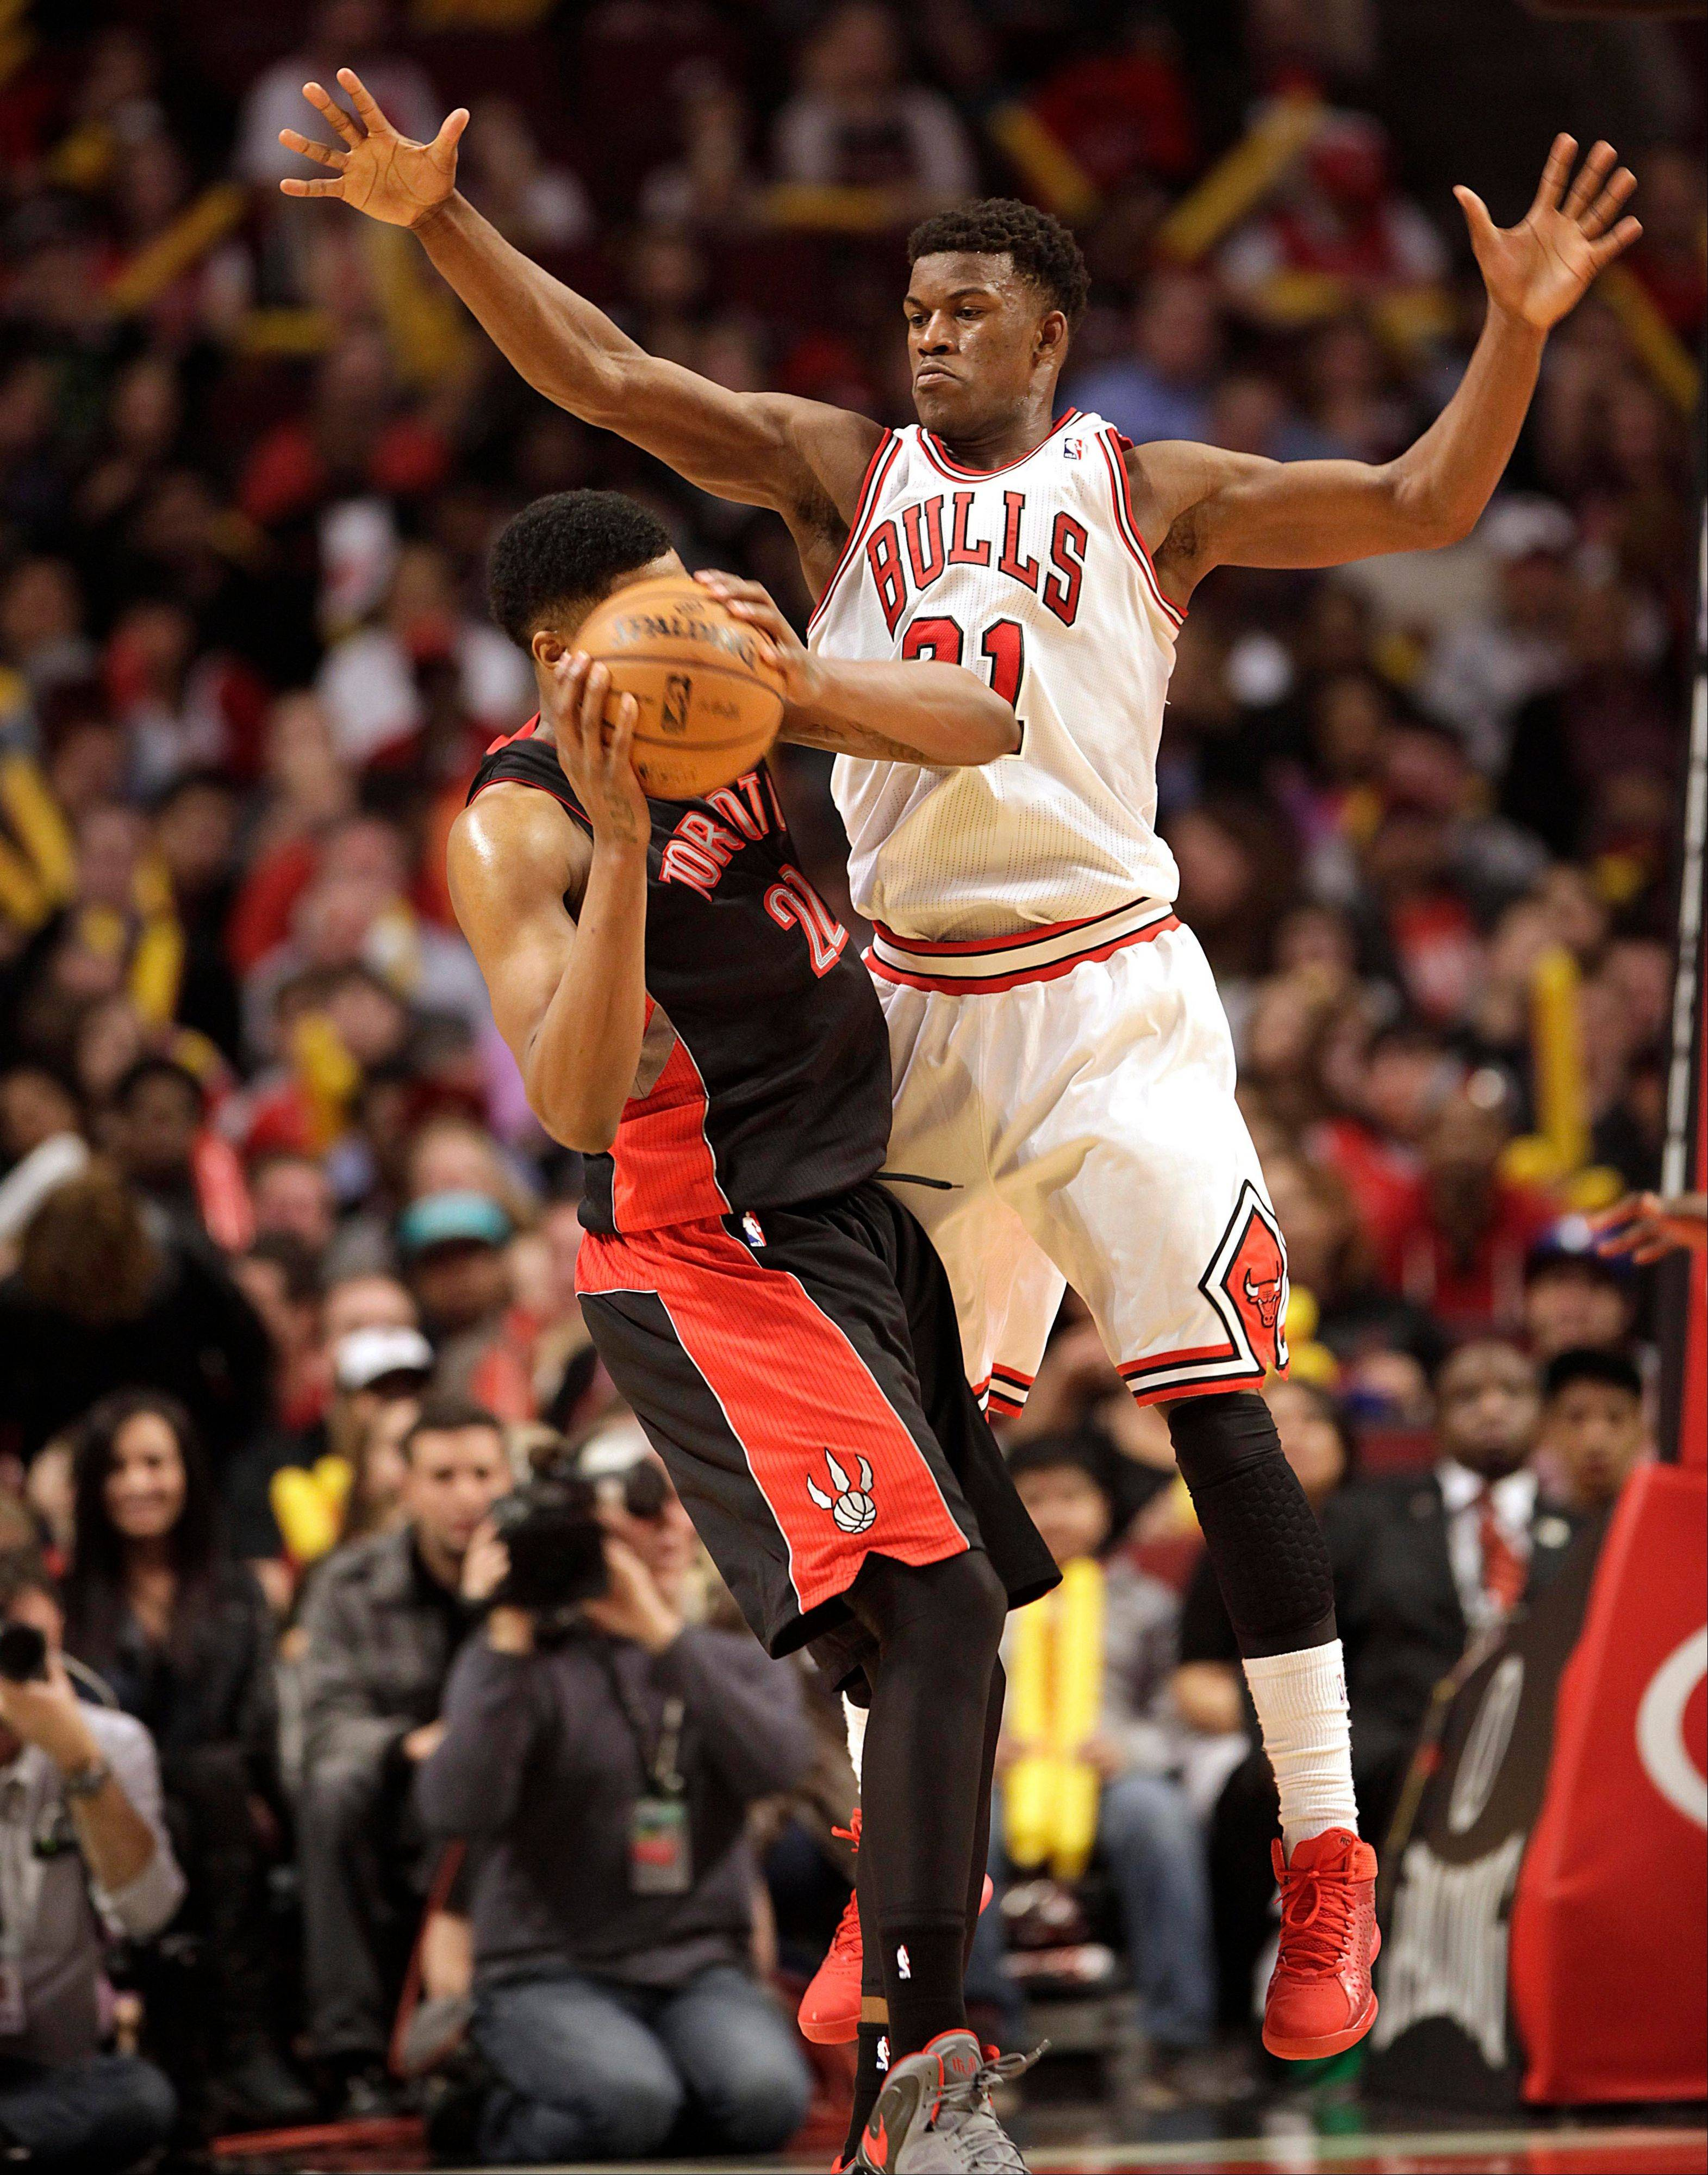 Chicago Bulls' Jimmy Butler plays defense against the Toronto Raptors' Rudy Gay during the second half as the Raptors beat the Bulls 101-98 in an NBA basketball game on Tuesday, April 9, 2013 in Chicago.